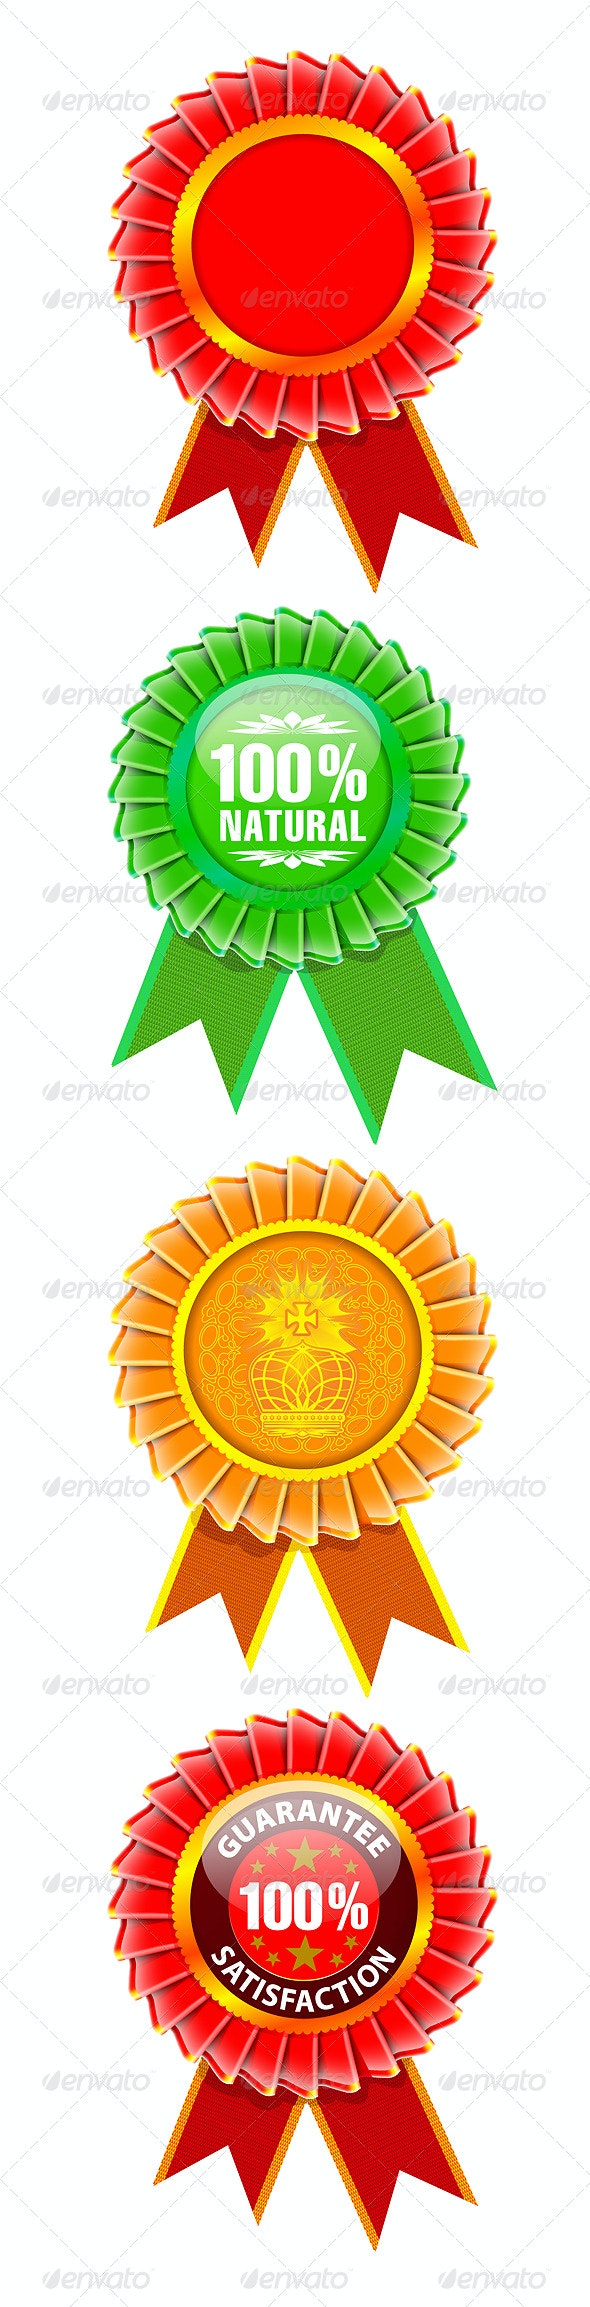 Award rosette set - Abstract Conceptual